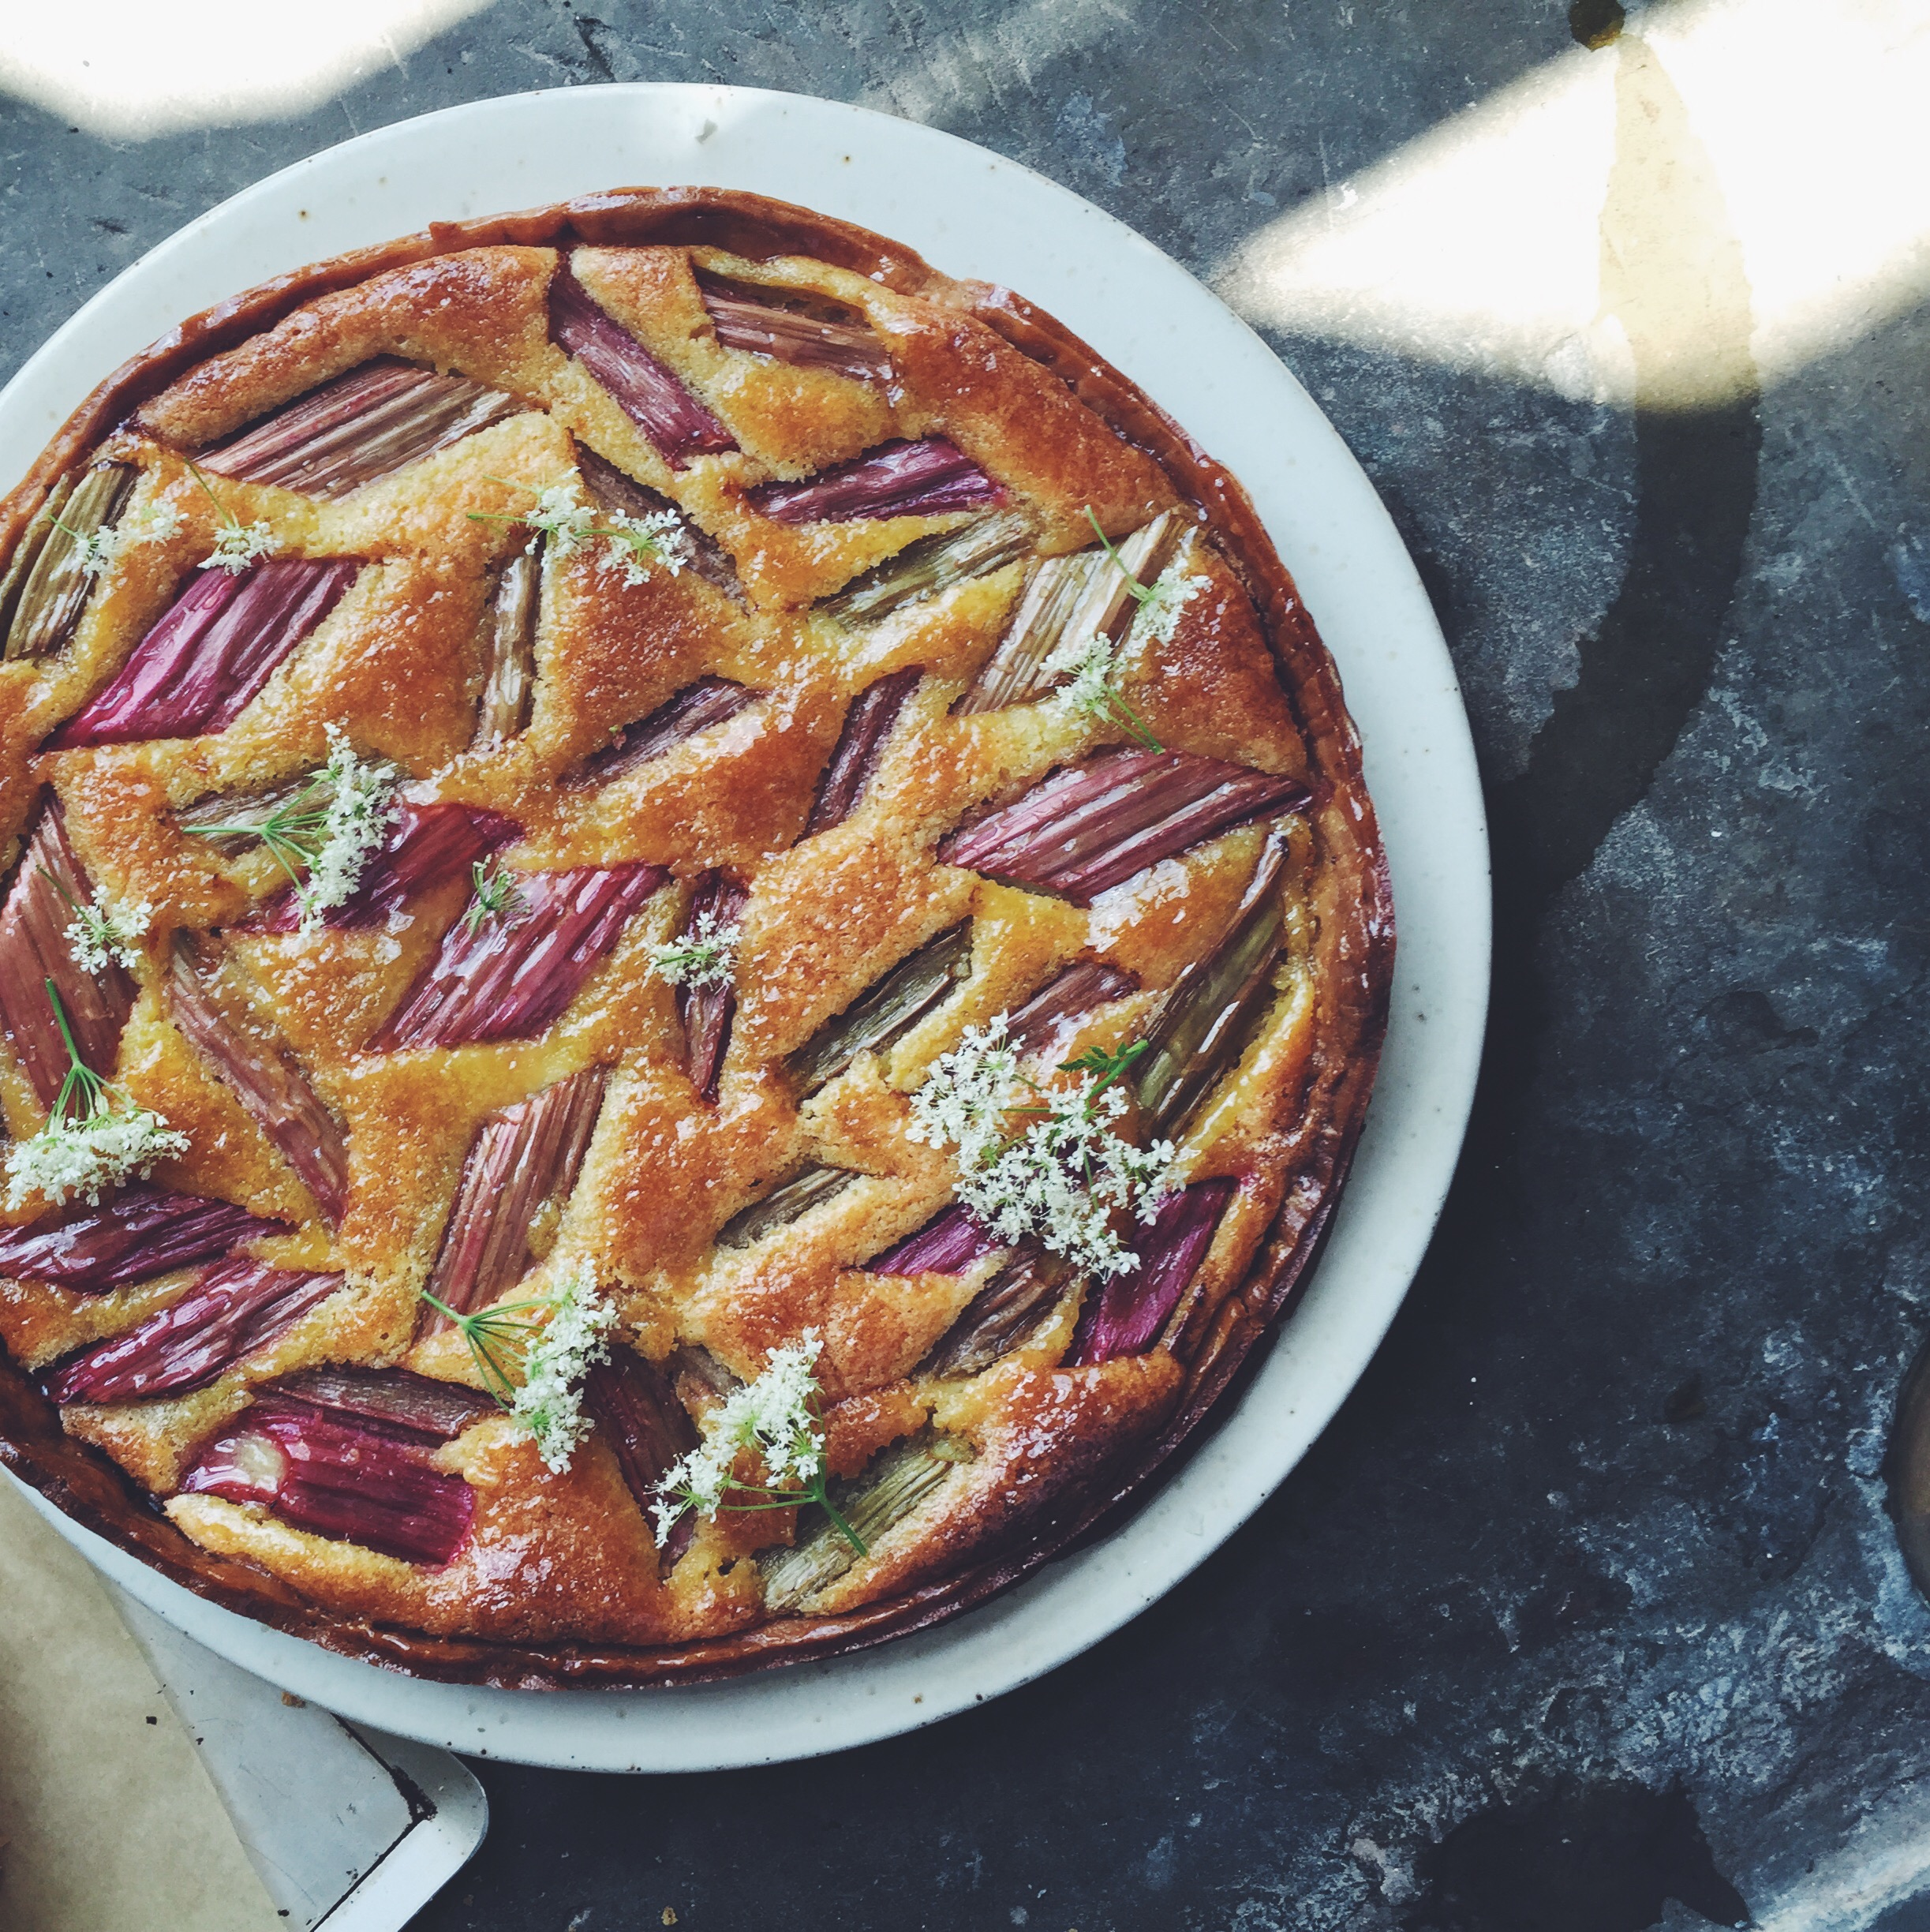 Rhubarb and almond tart with a layer of rhubarb and elderflower jam. Decorated with elderflowers.